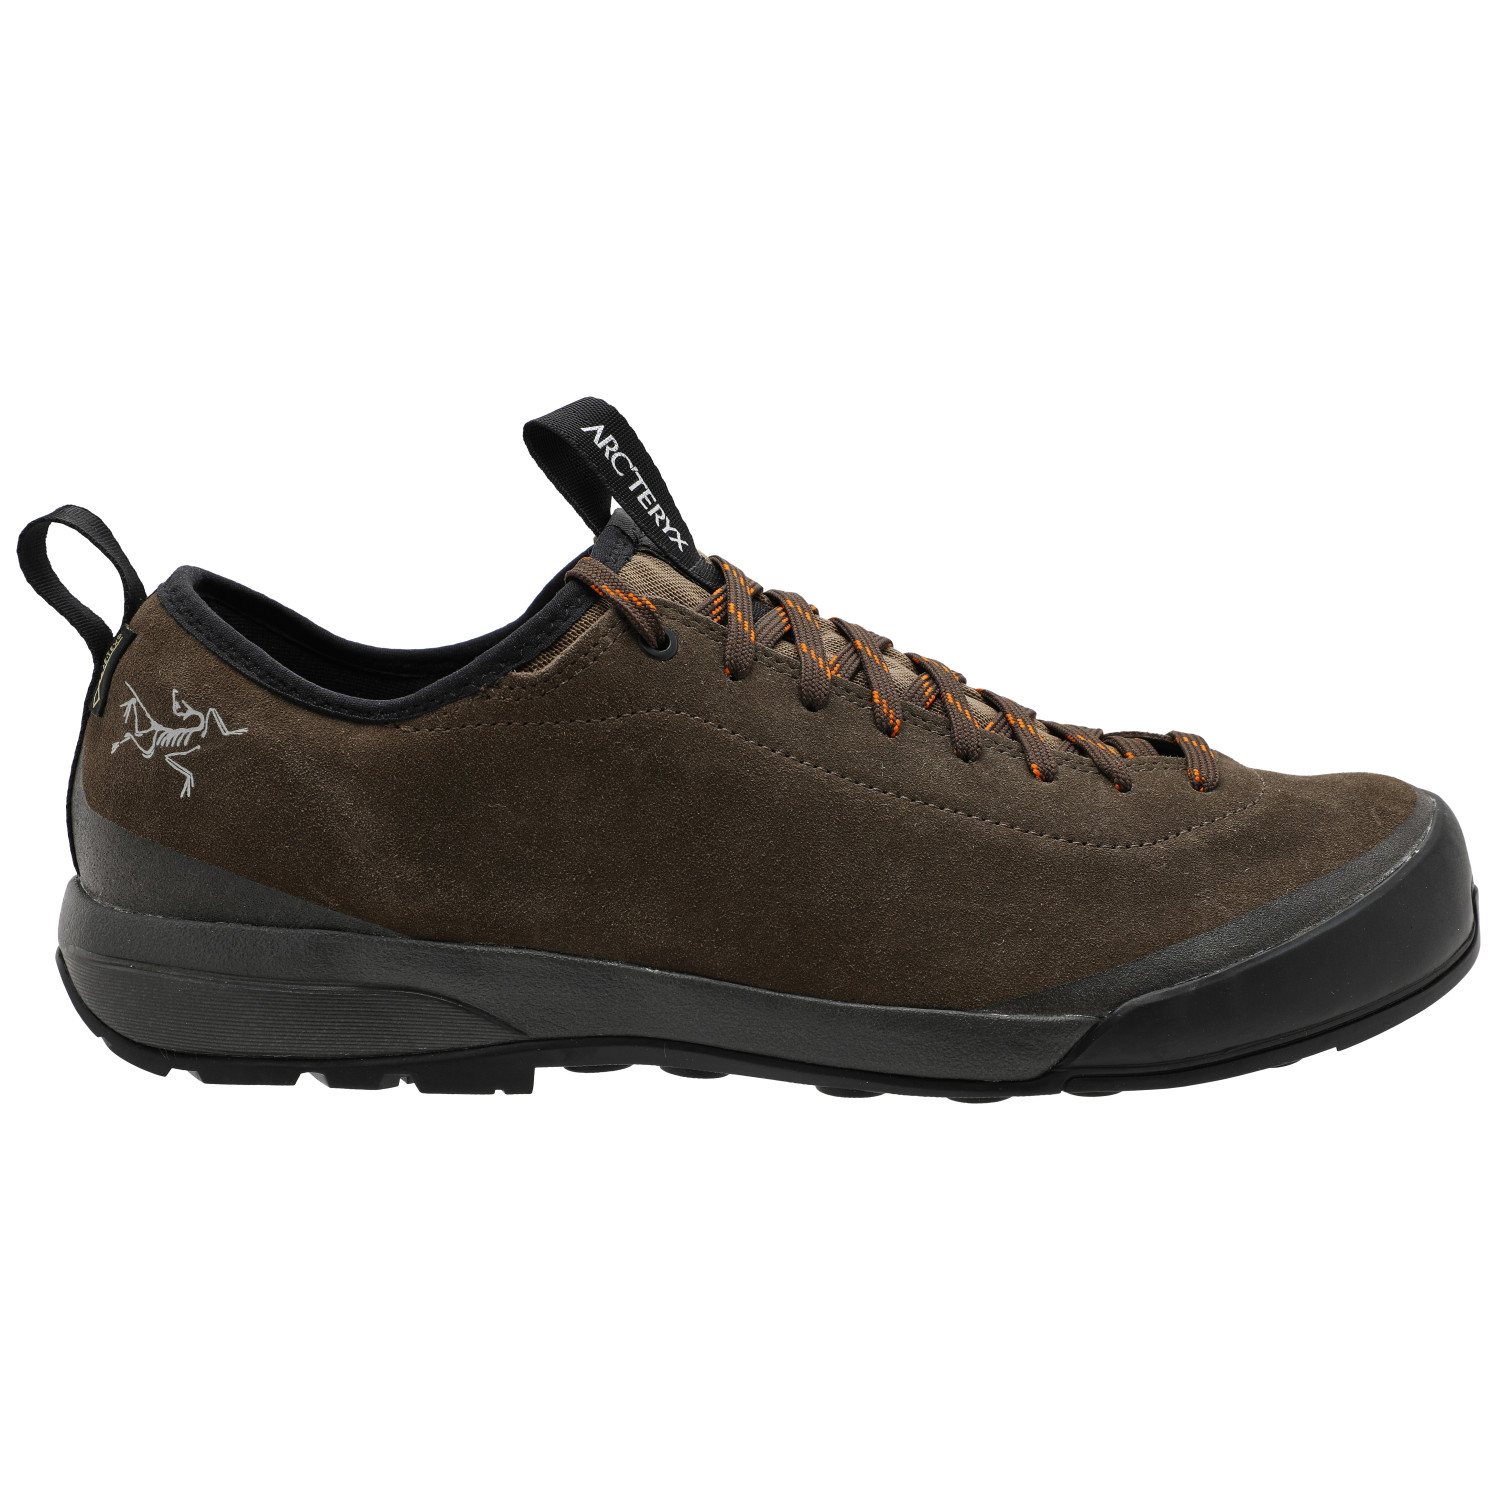 Main product image: Acrux SL Leather GTX Approach Shoe Men's